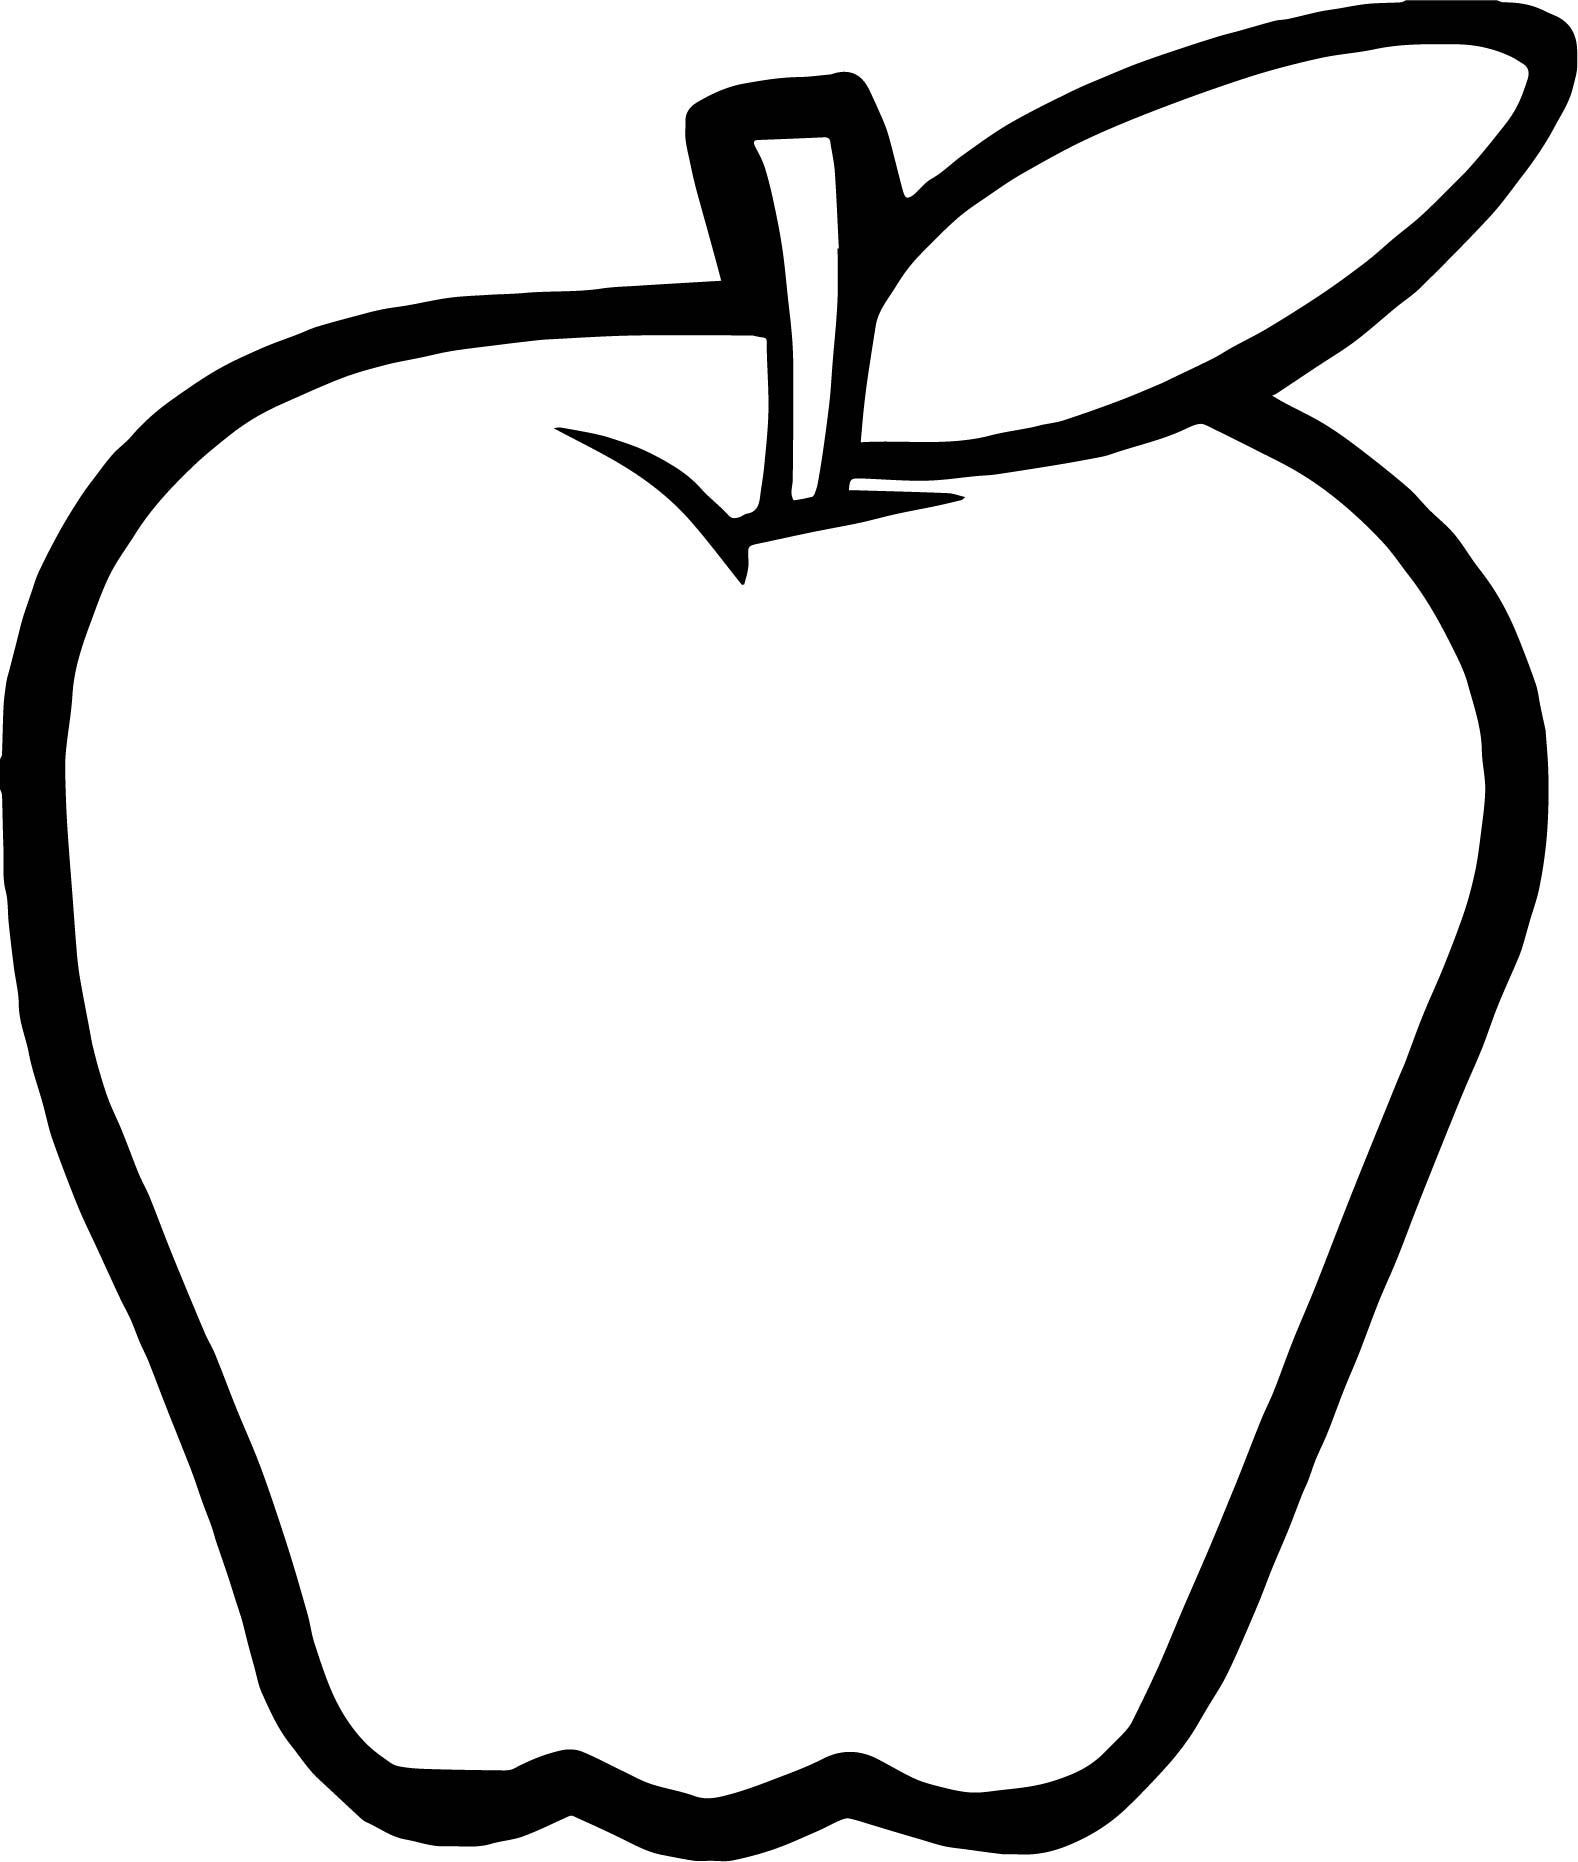 Cool Smoothie Smash Coloring Page Coloring Pages Coloring Pages